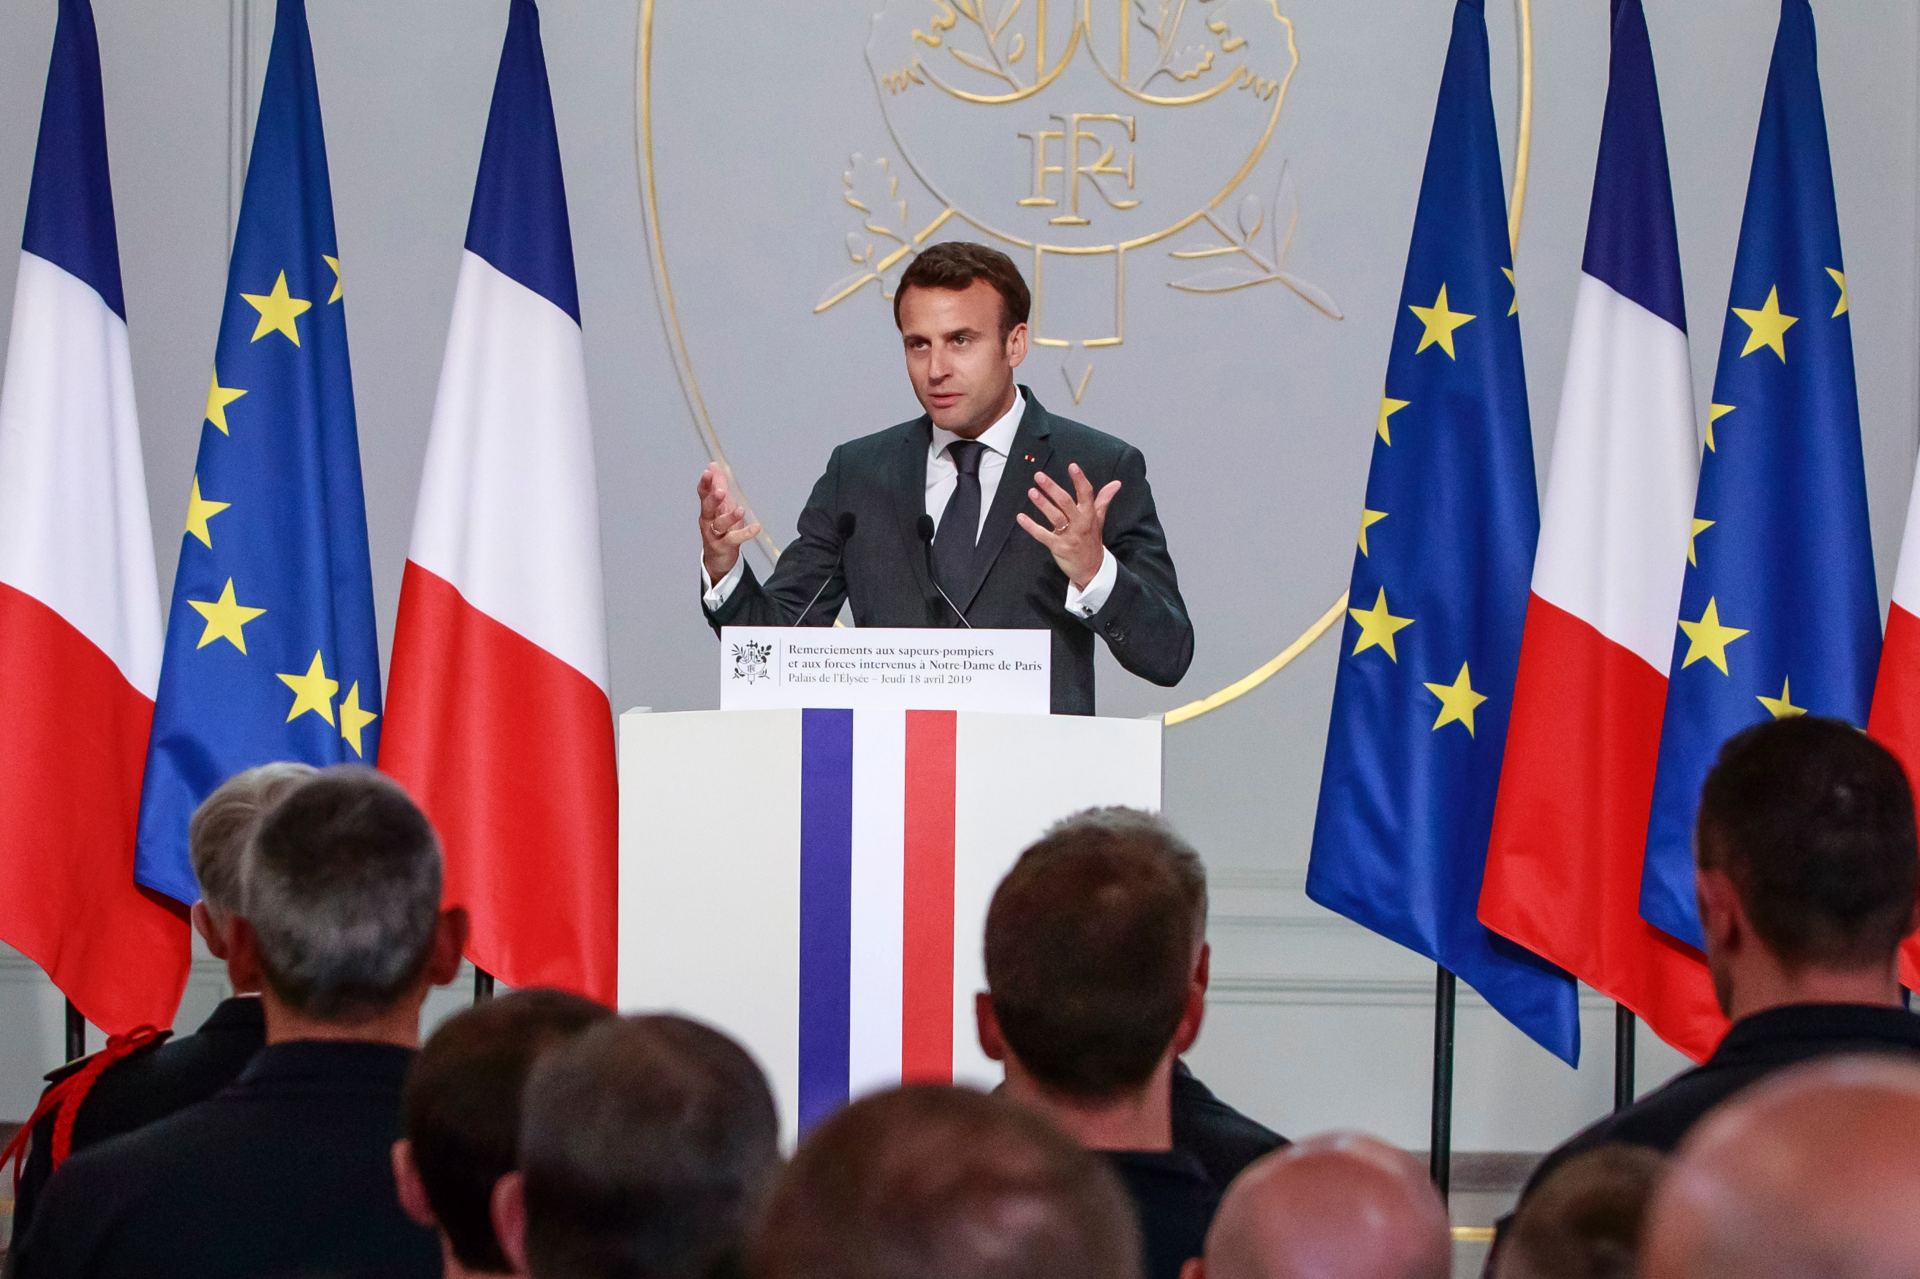 Macron meets officials, eyes Notre Dame for legacy-building